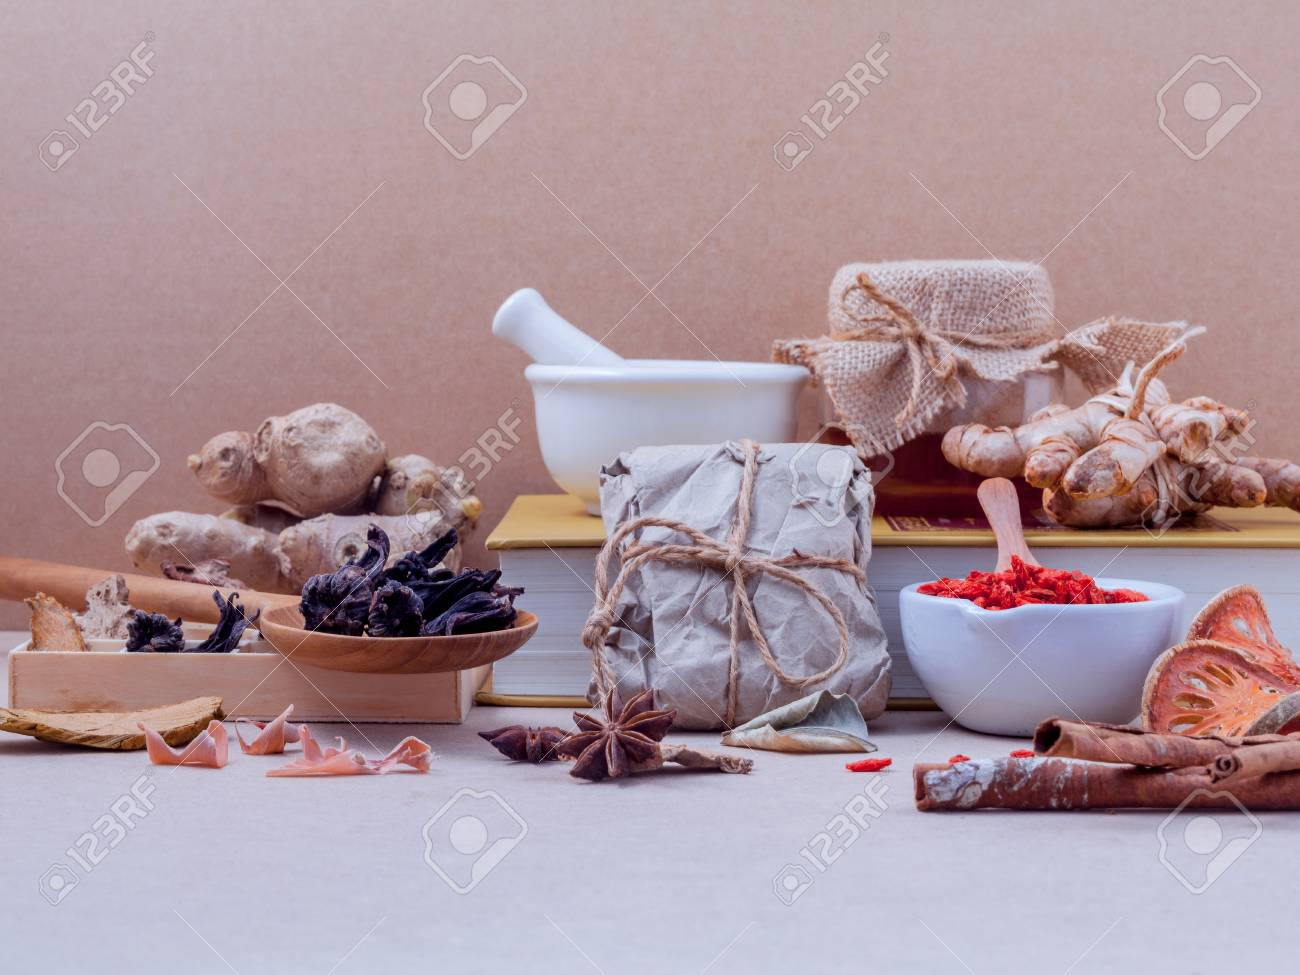 Alternative healthcare dried various Chinese herbs in wooden box and dried roselle in wooden spoon on medical textbook with mortar on brown background. - 51659570